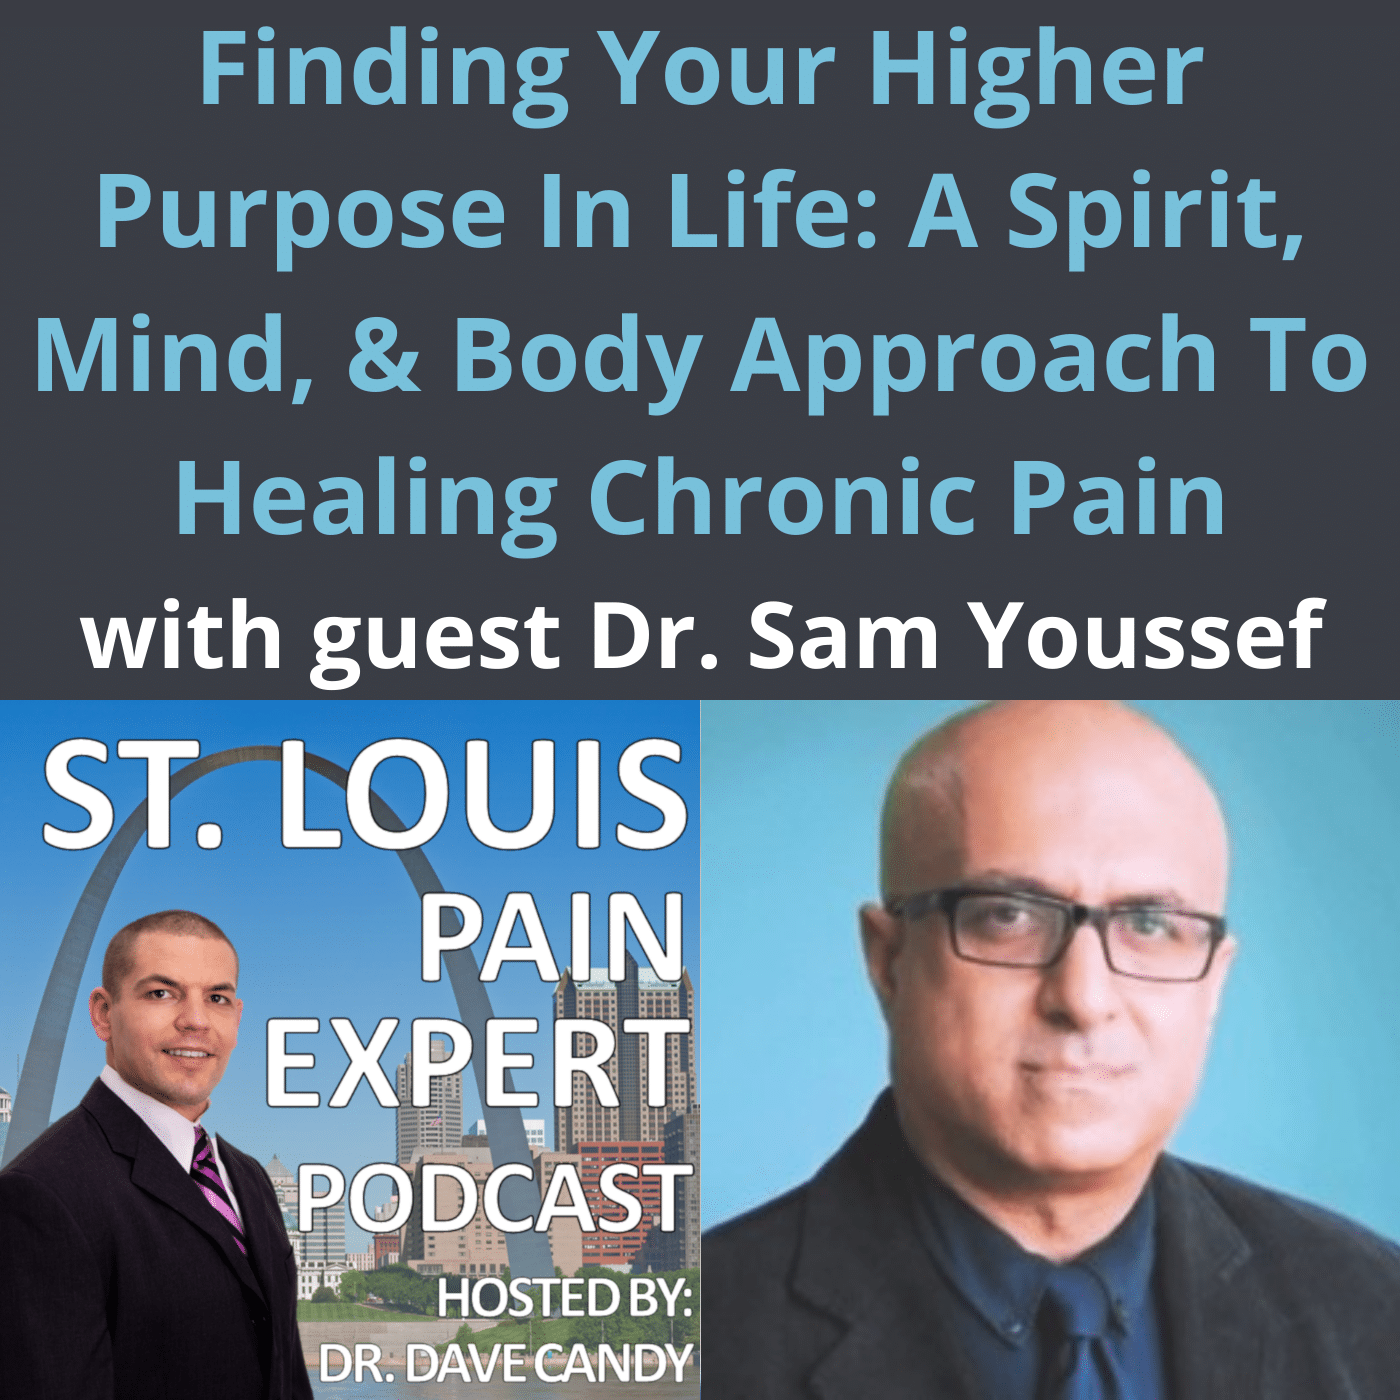 Finding Your Higher Purpose In Life A Spirit, Mind, & Body Approach To Healing Chronic Pain With Guest Dr. Sam Youssef